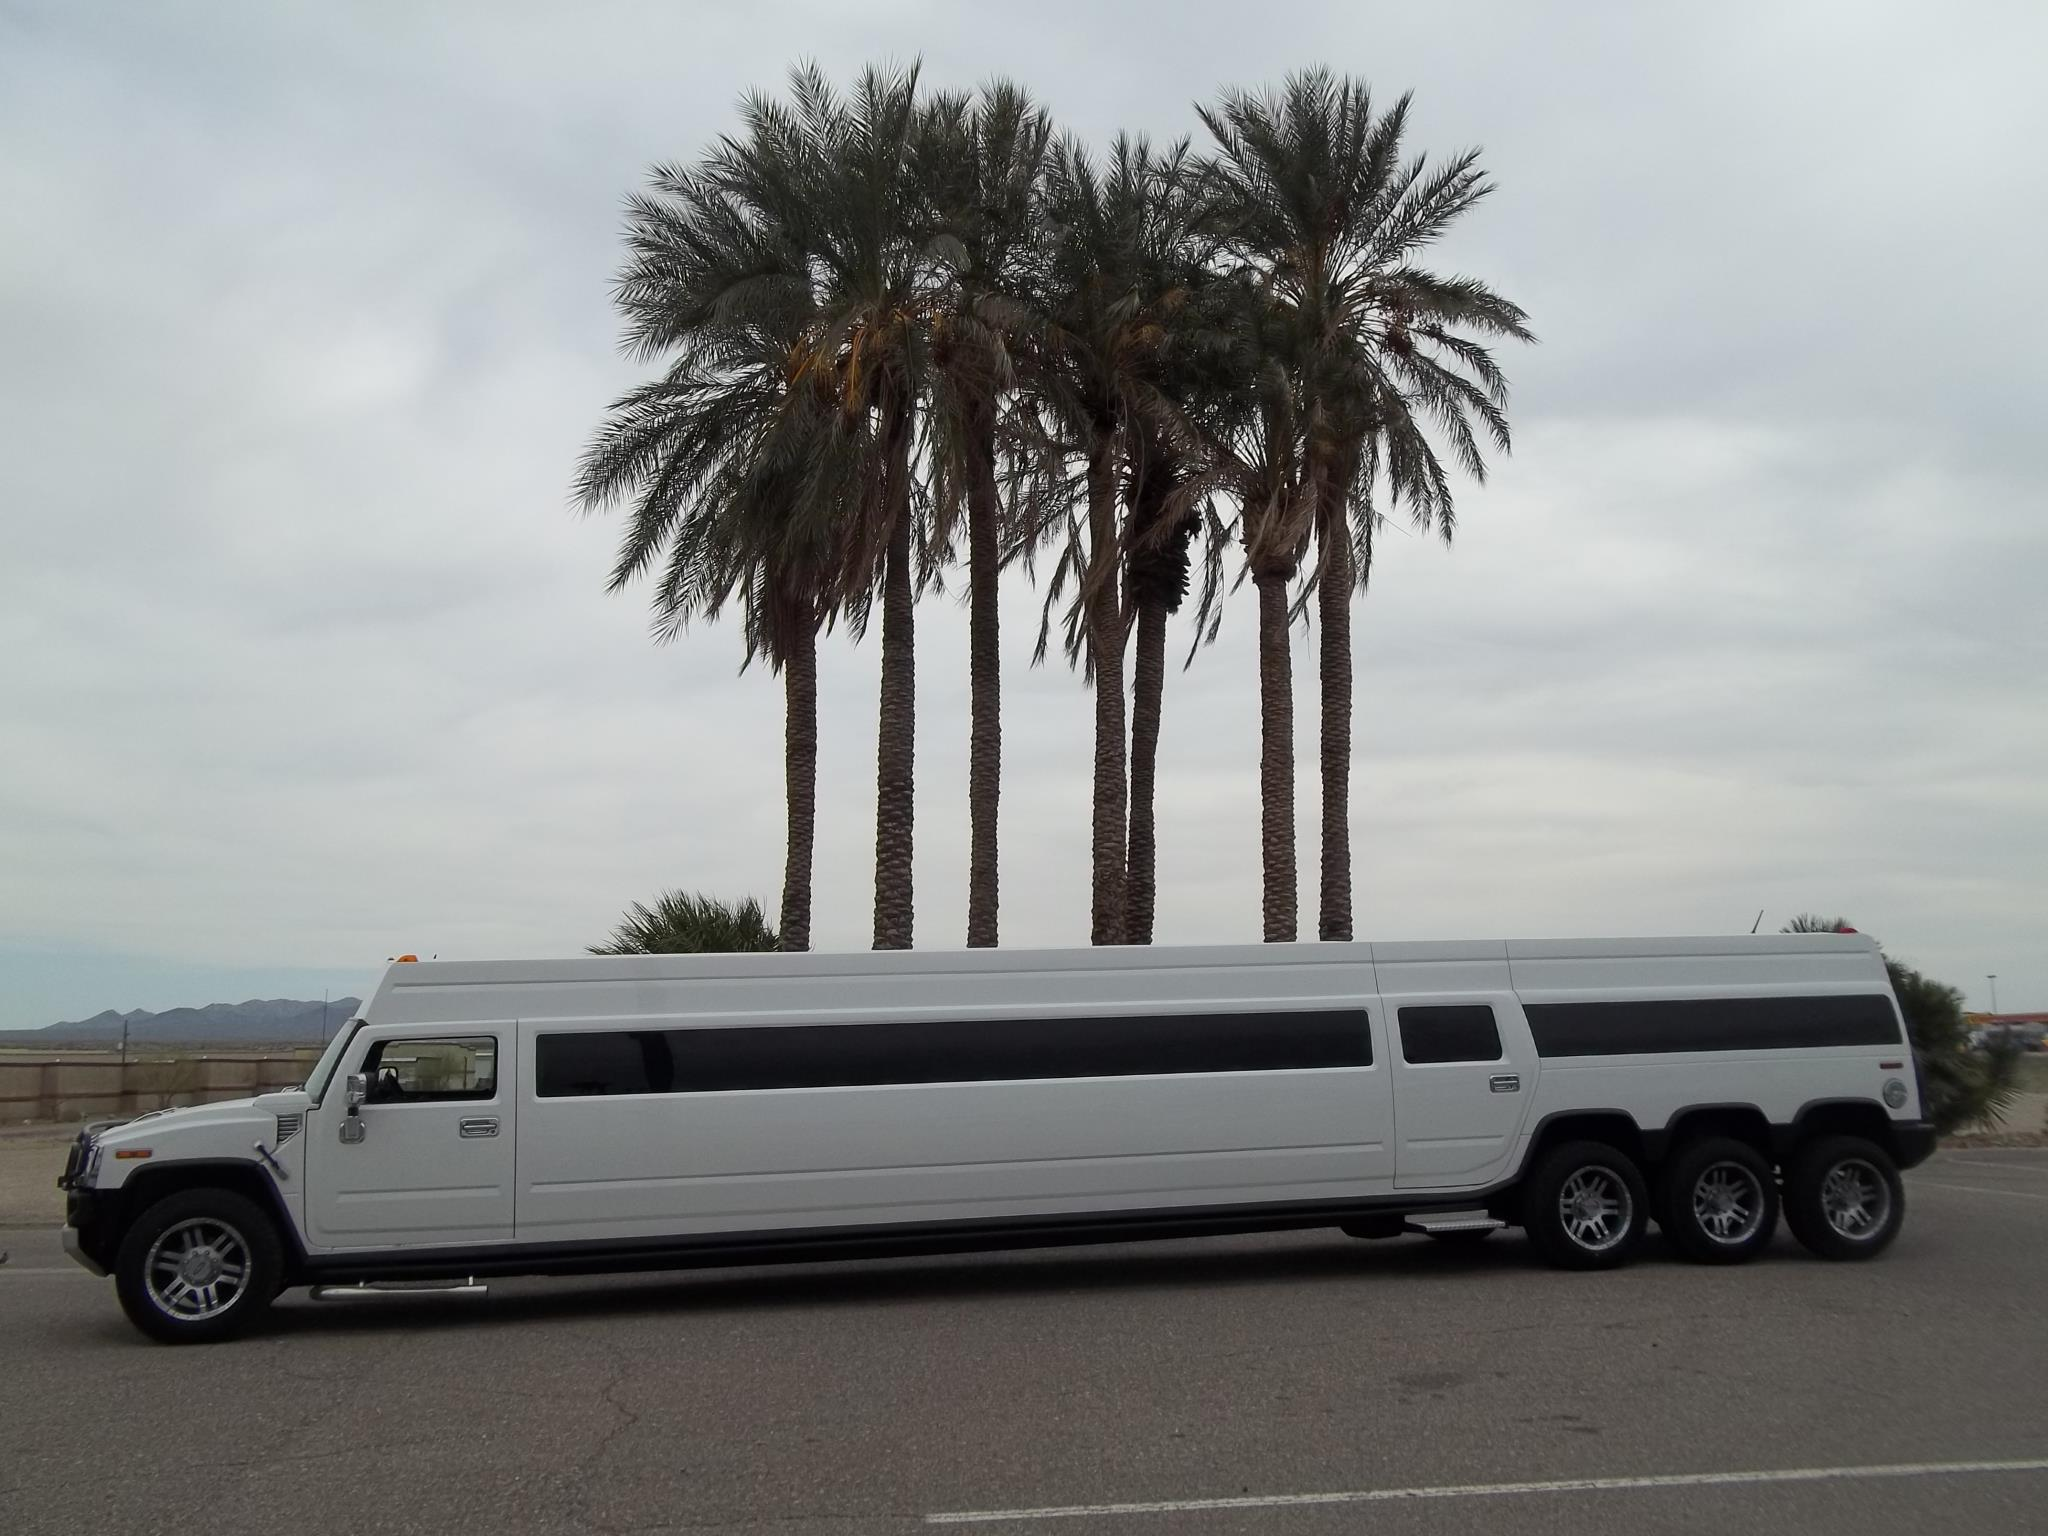 A Stars Limo | Hummer Rides in Palos Heights | Hummer Rides Palos Heights 2.jpg